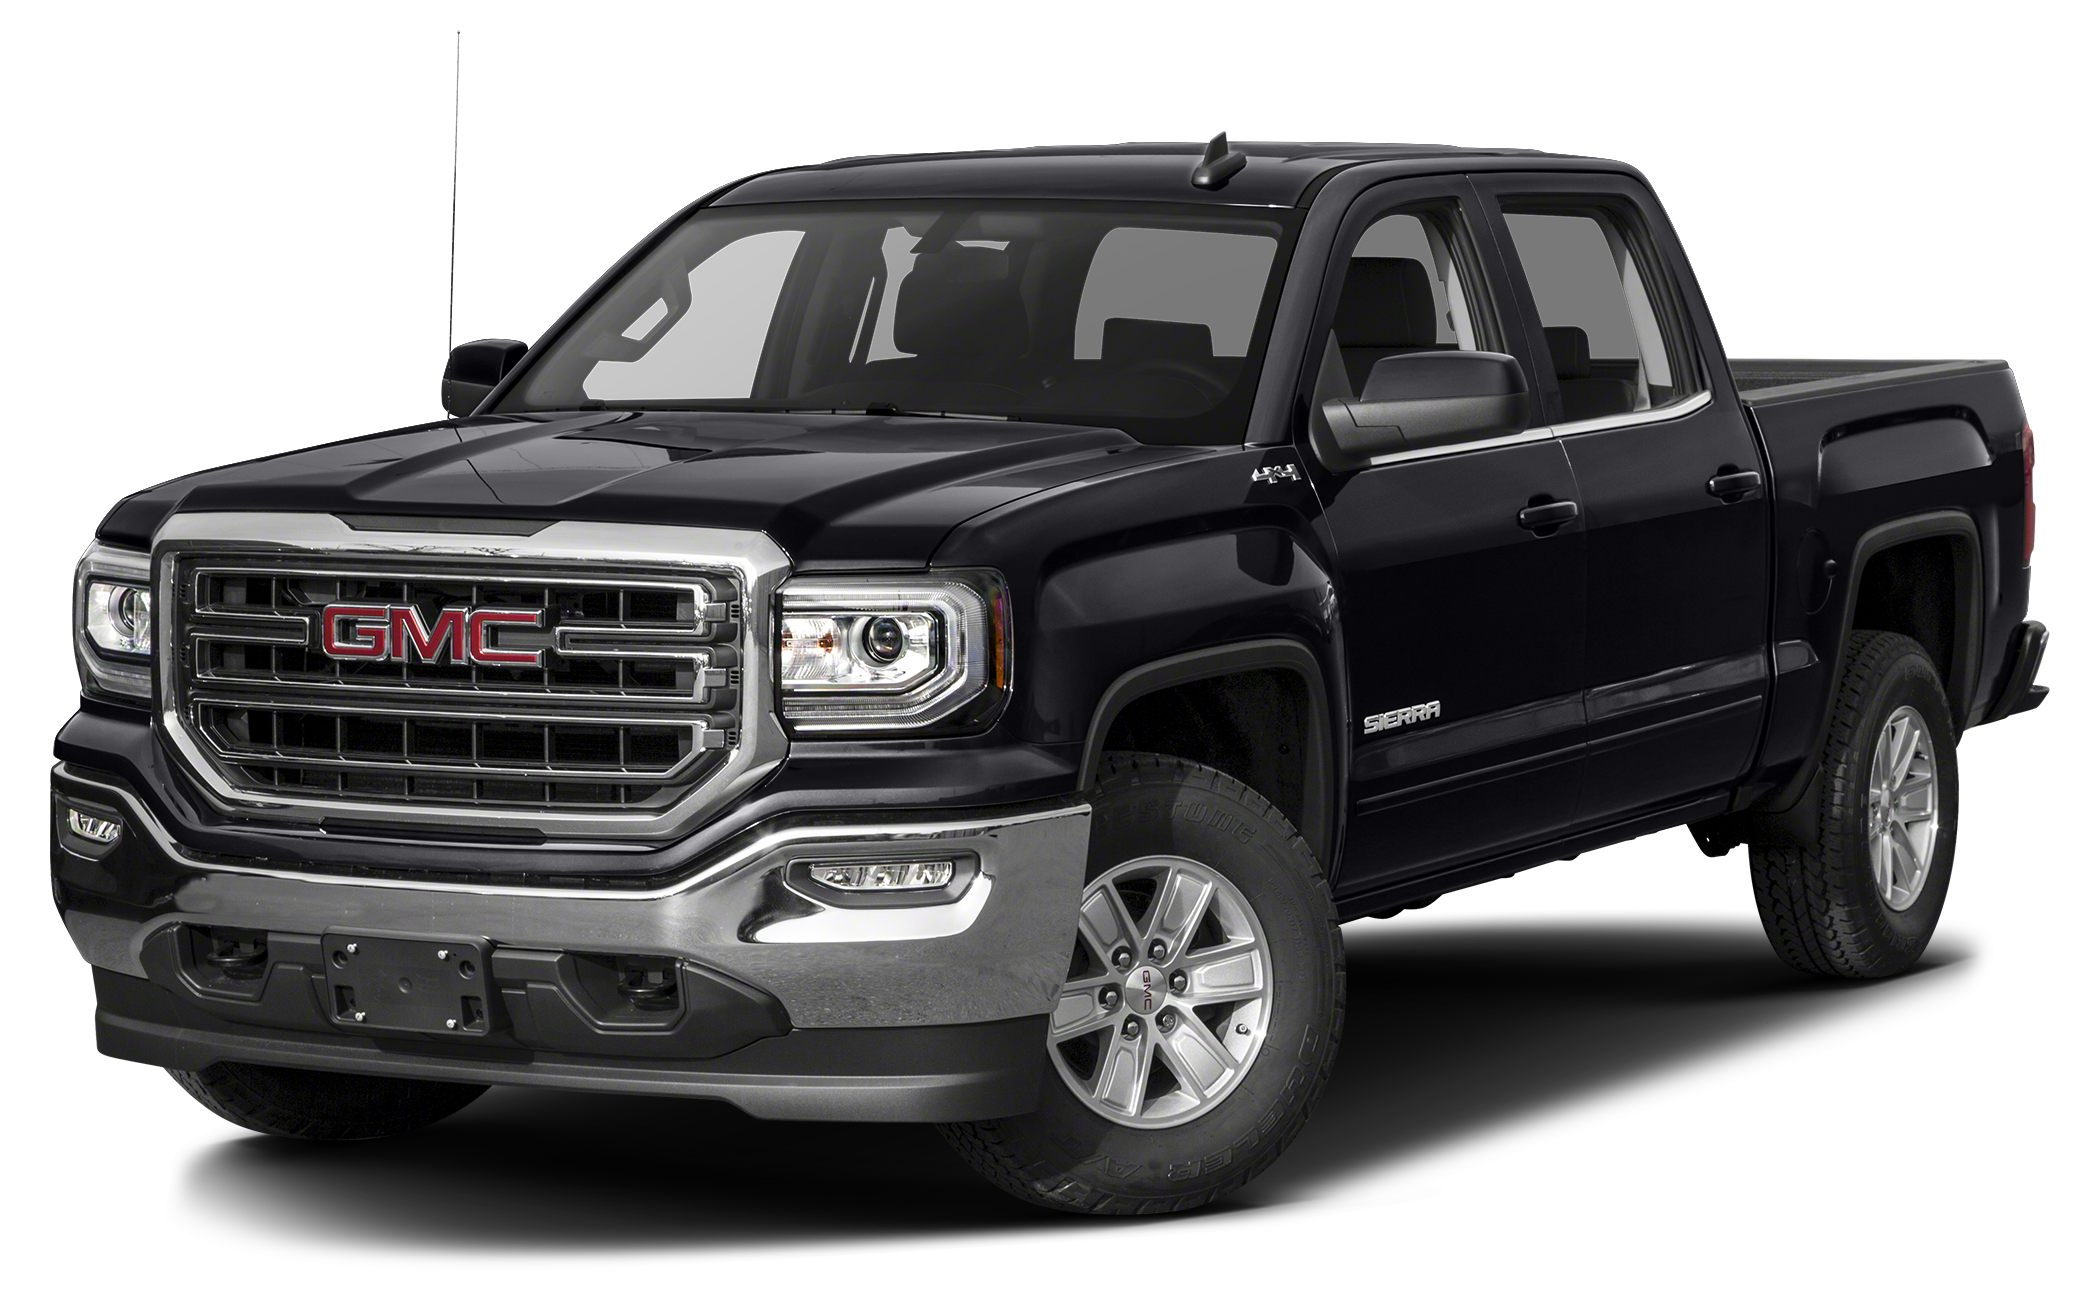 ram 1500 slt vs ford f 150 xlt vs gmc sierra 1500 sle. Black Bedroom Furniture Sets. Home Design Ideas